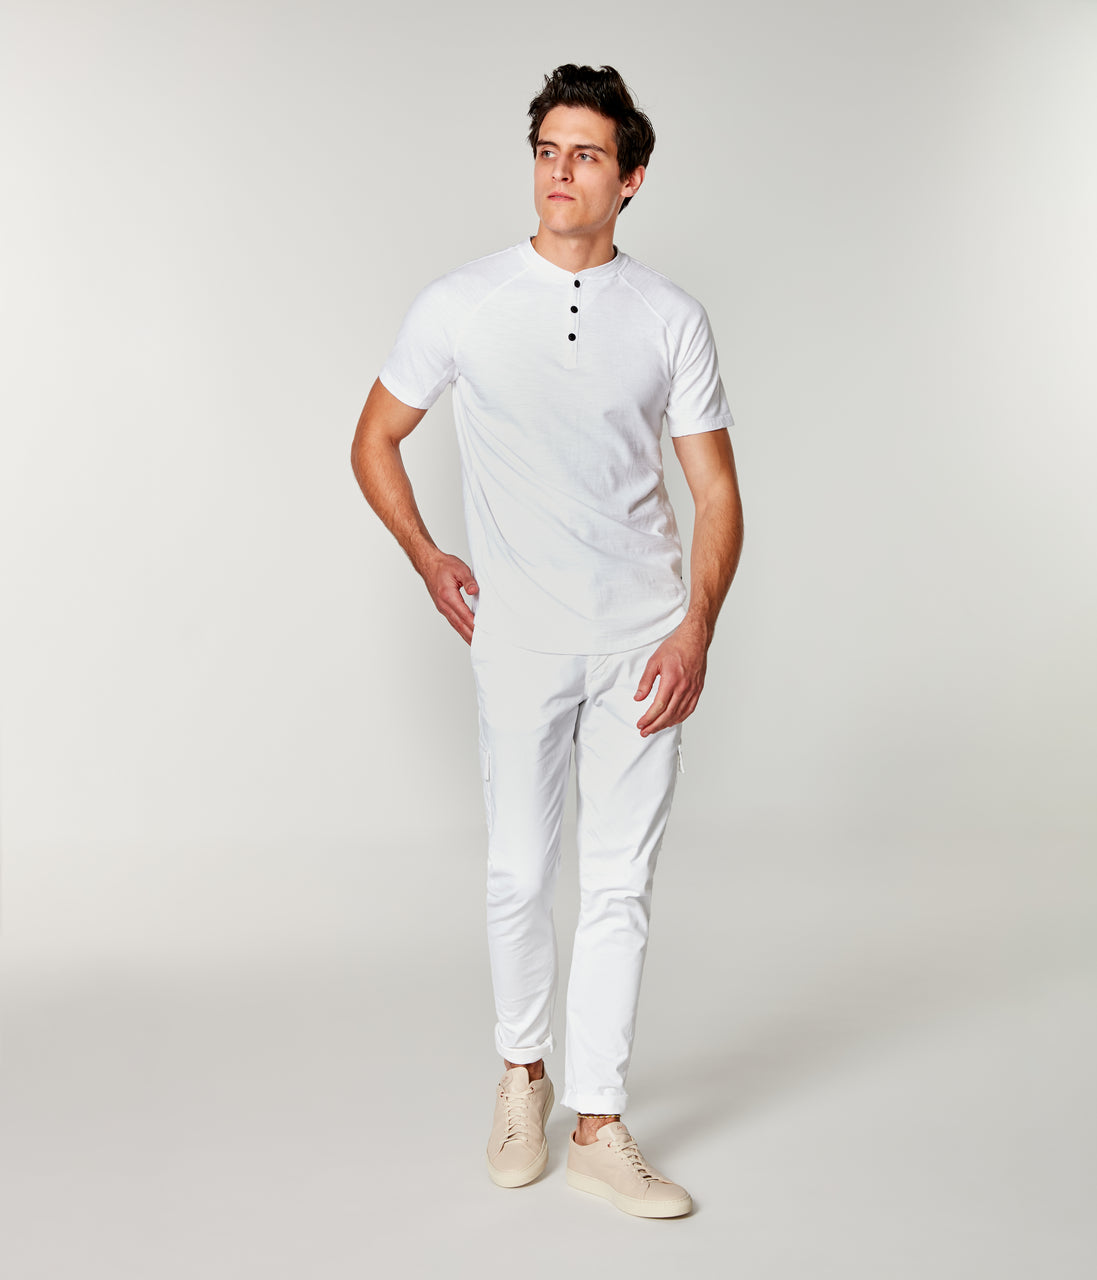 Soft Slub Jersey Legend Henley - White - Good Man Brand - Soft Slub Jersey Legend Henley - White